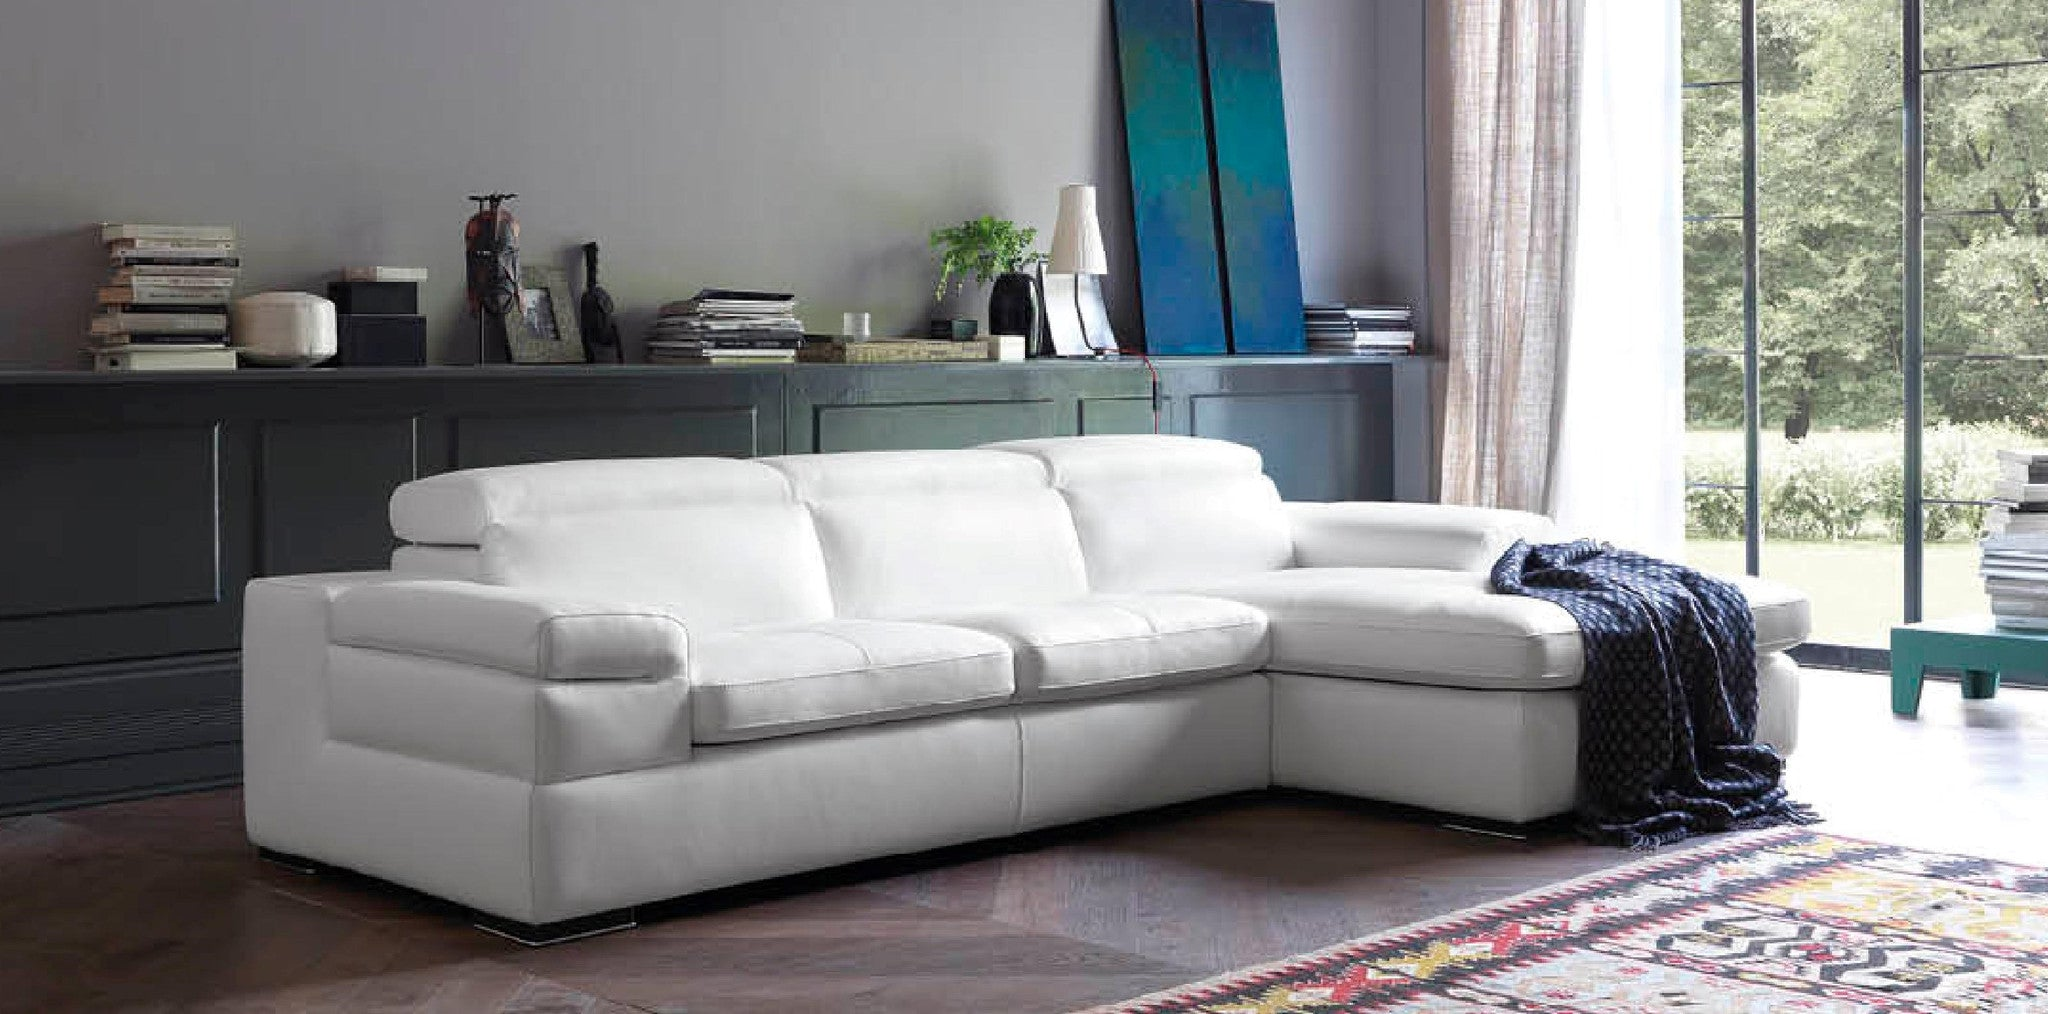 Italian Leather Sofas in Cleethorpes